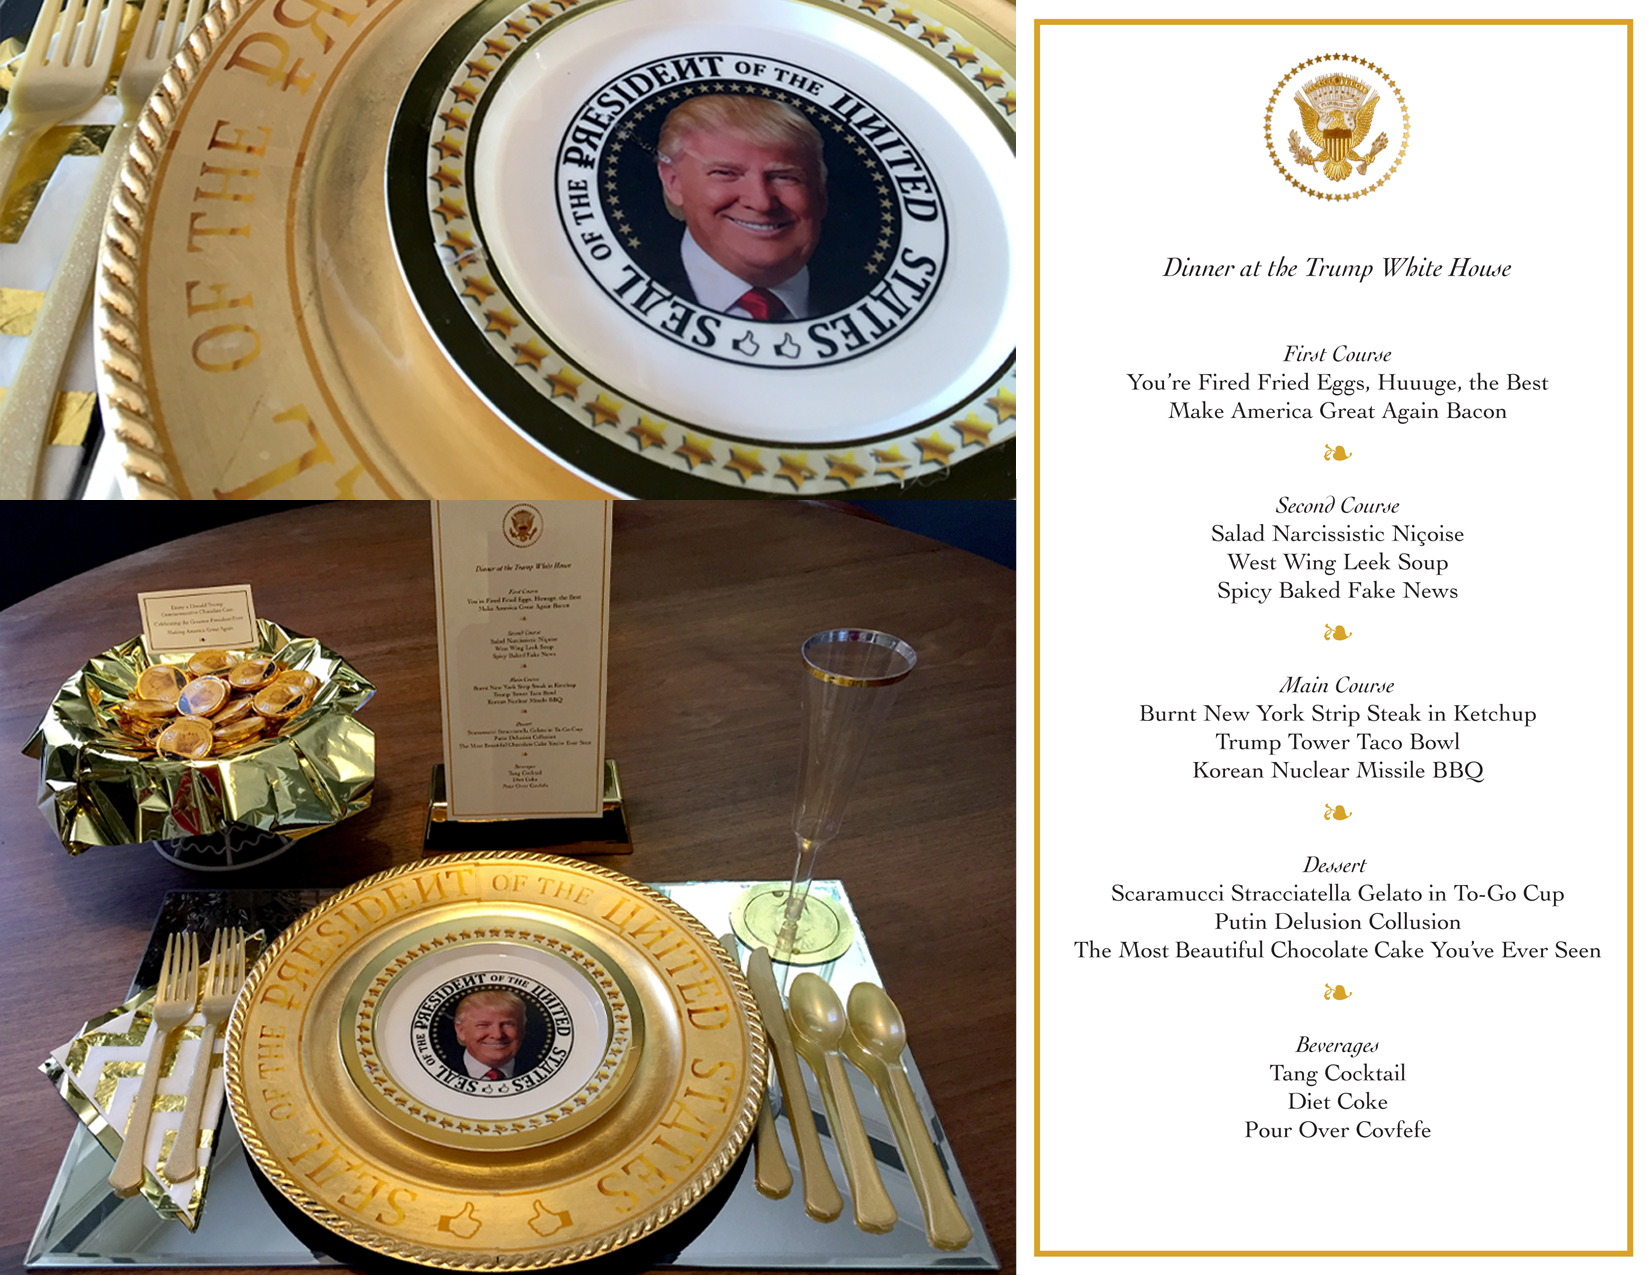 Dinner at the Trump White House